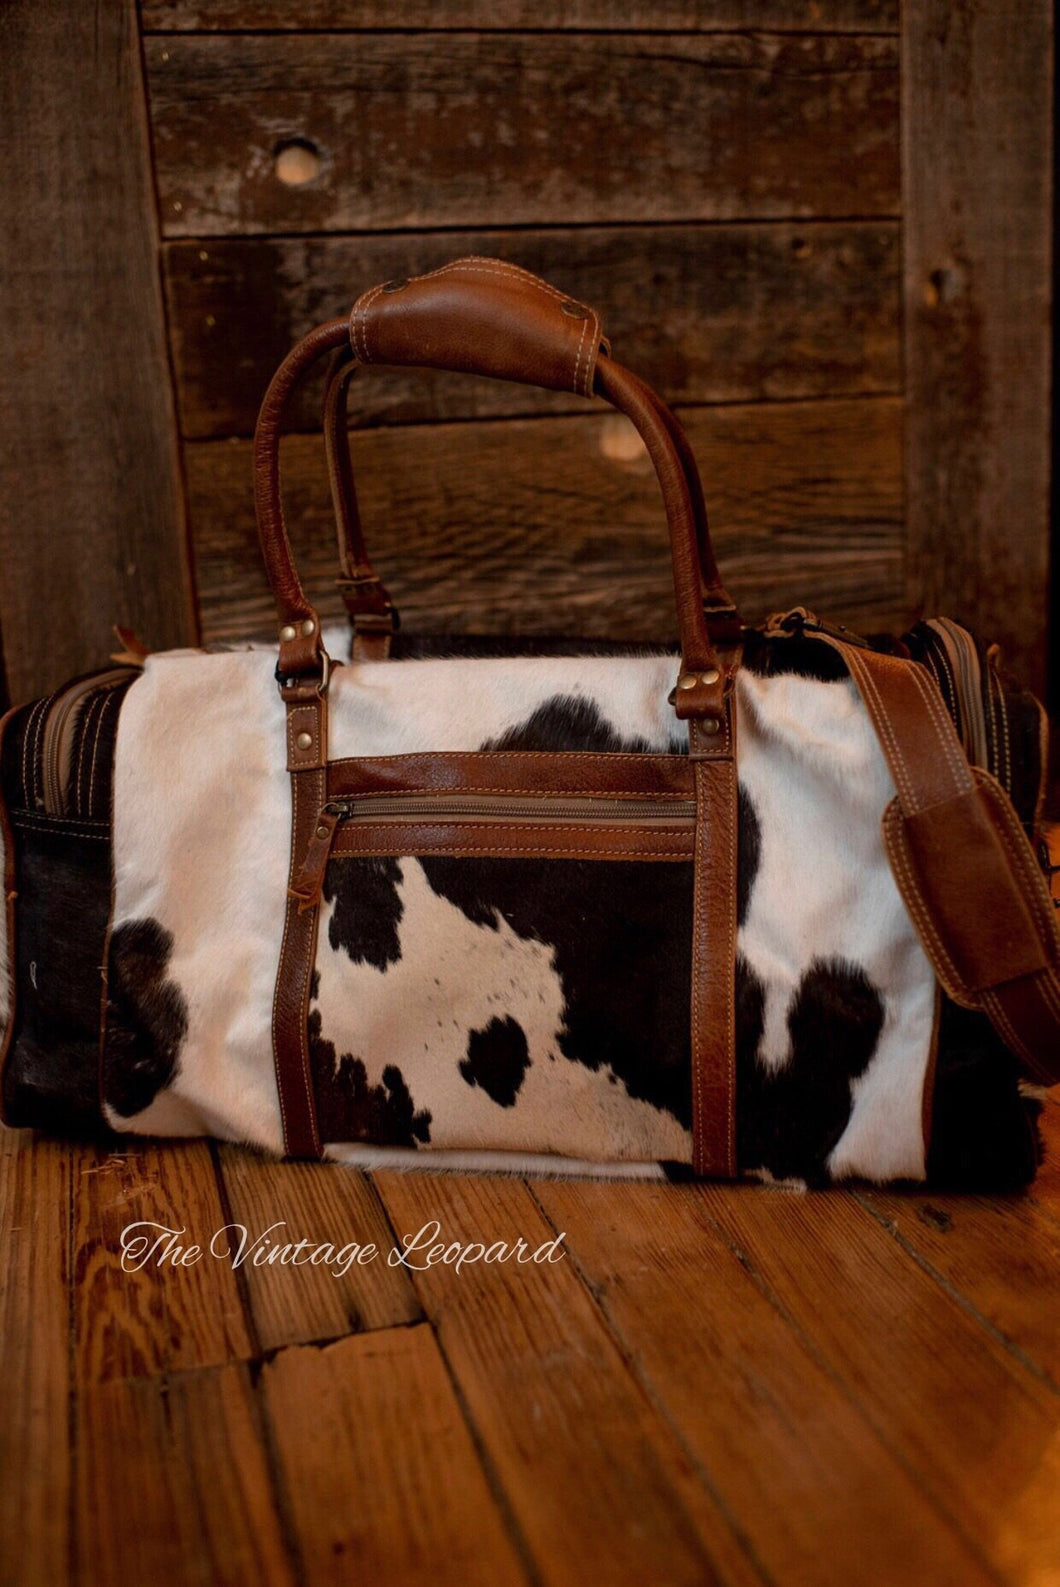 Myra Cowhide Leather Amore Traveller Duffle Bag The Vintage Leopard At myra, we provide a wide range of canvas, leather & hair on products. the vintage leopard